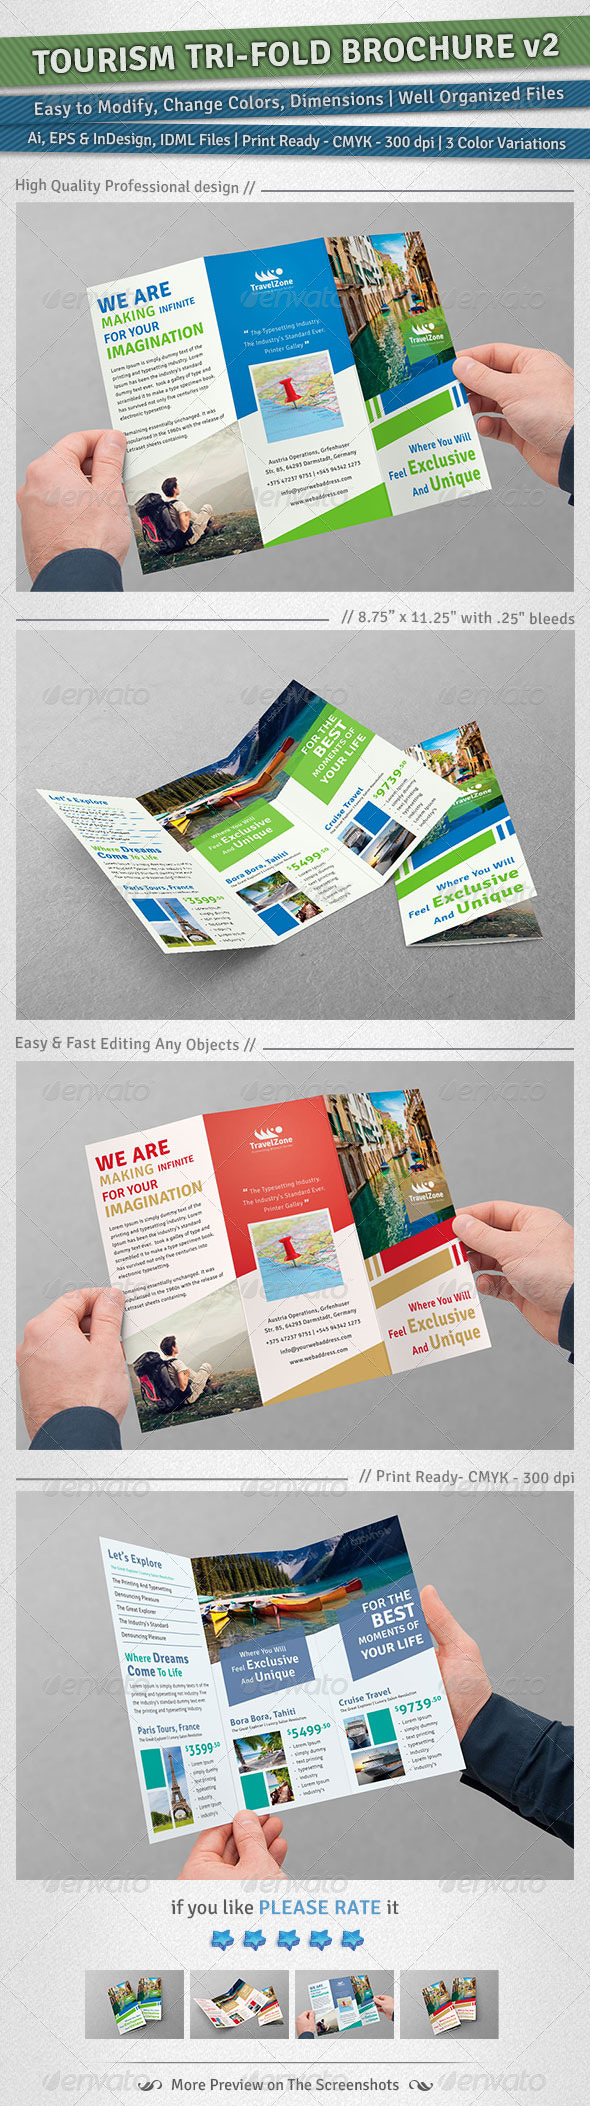 GraphicRiver Tourism Tri-Fold Brochure Volume 2 5033855